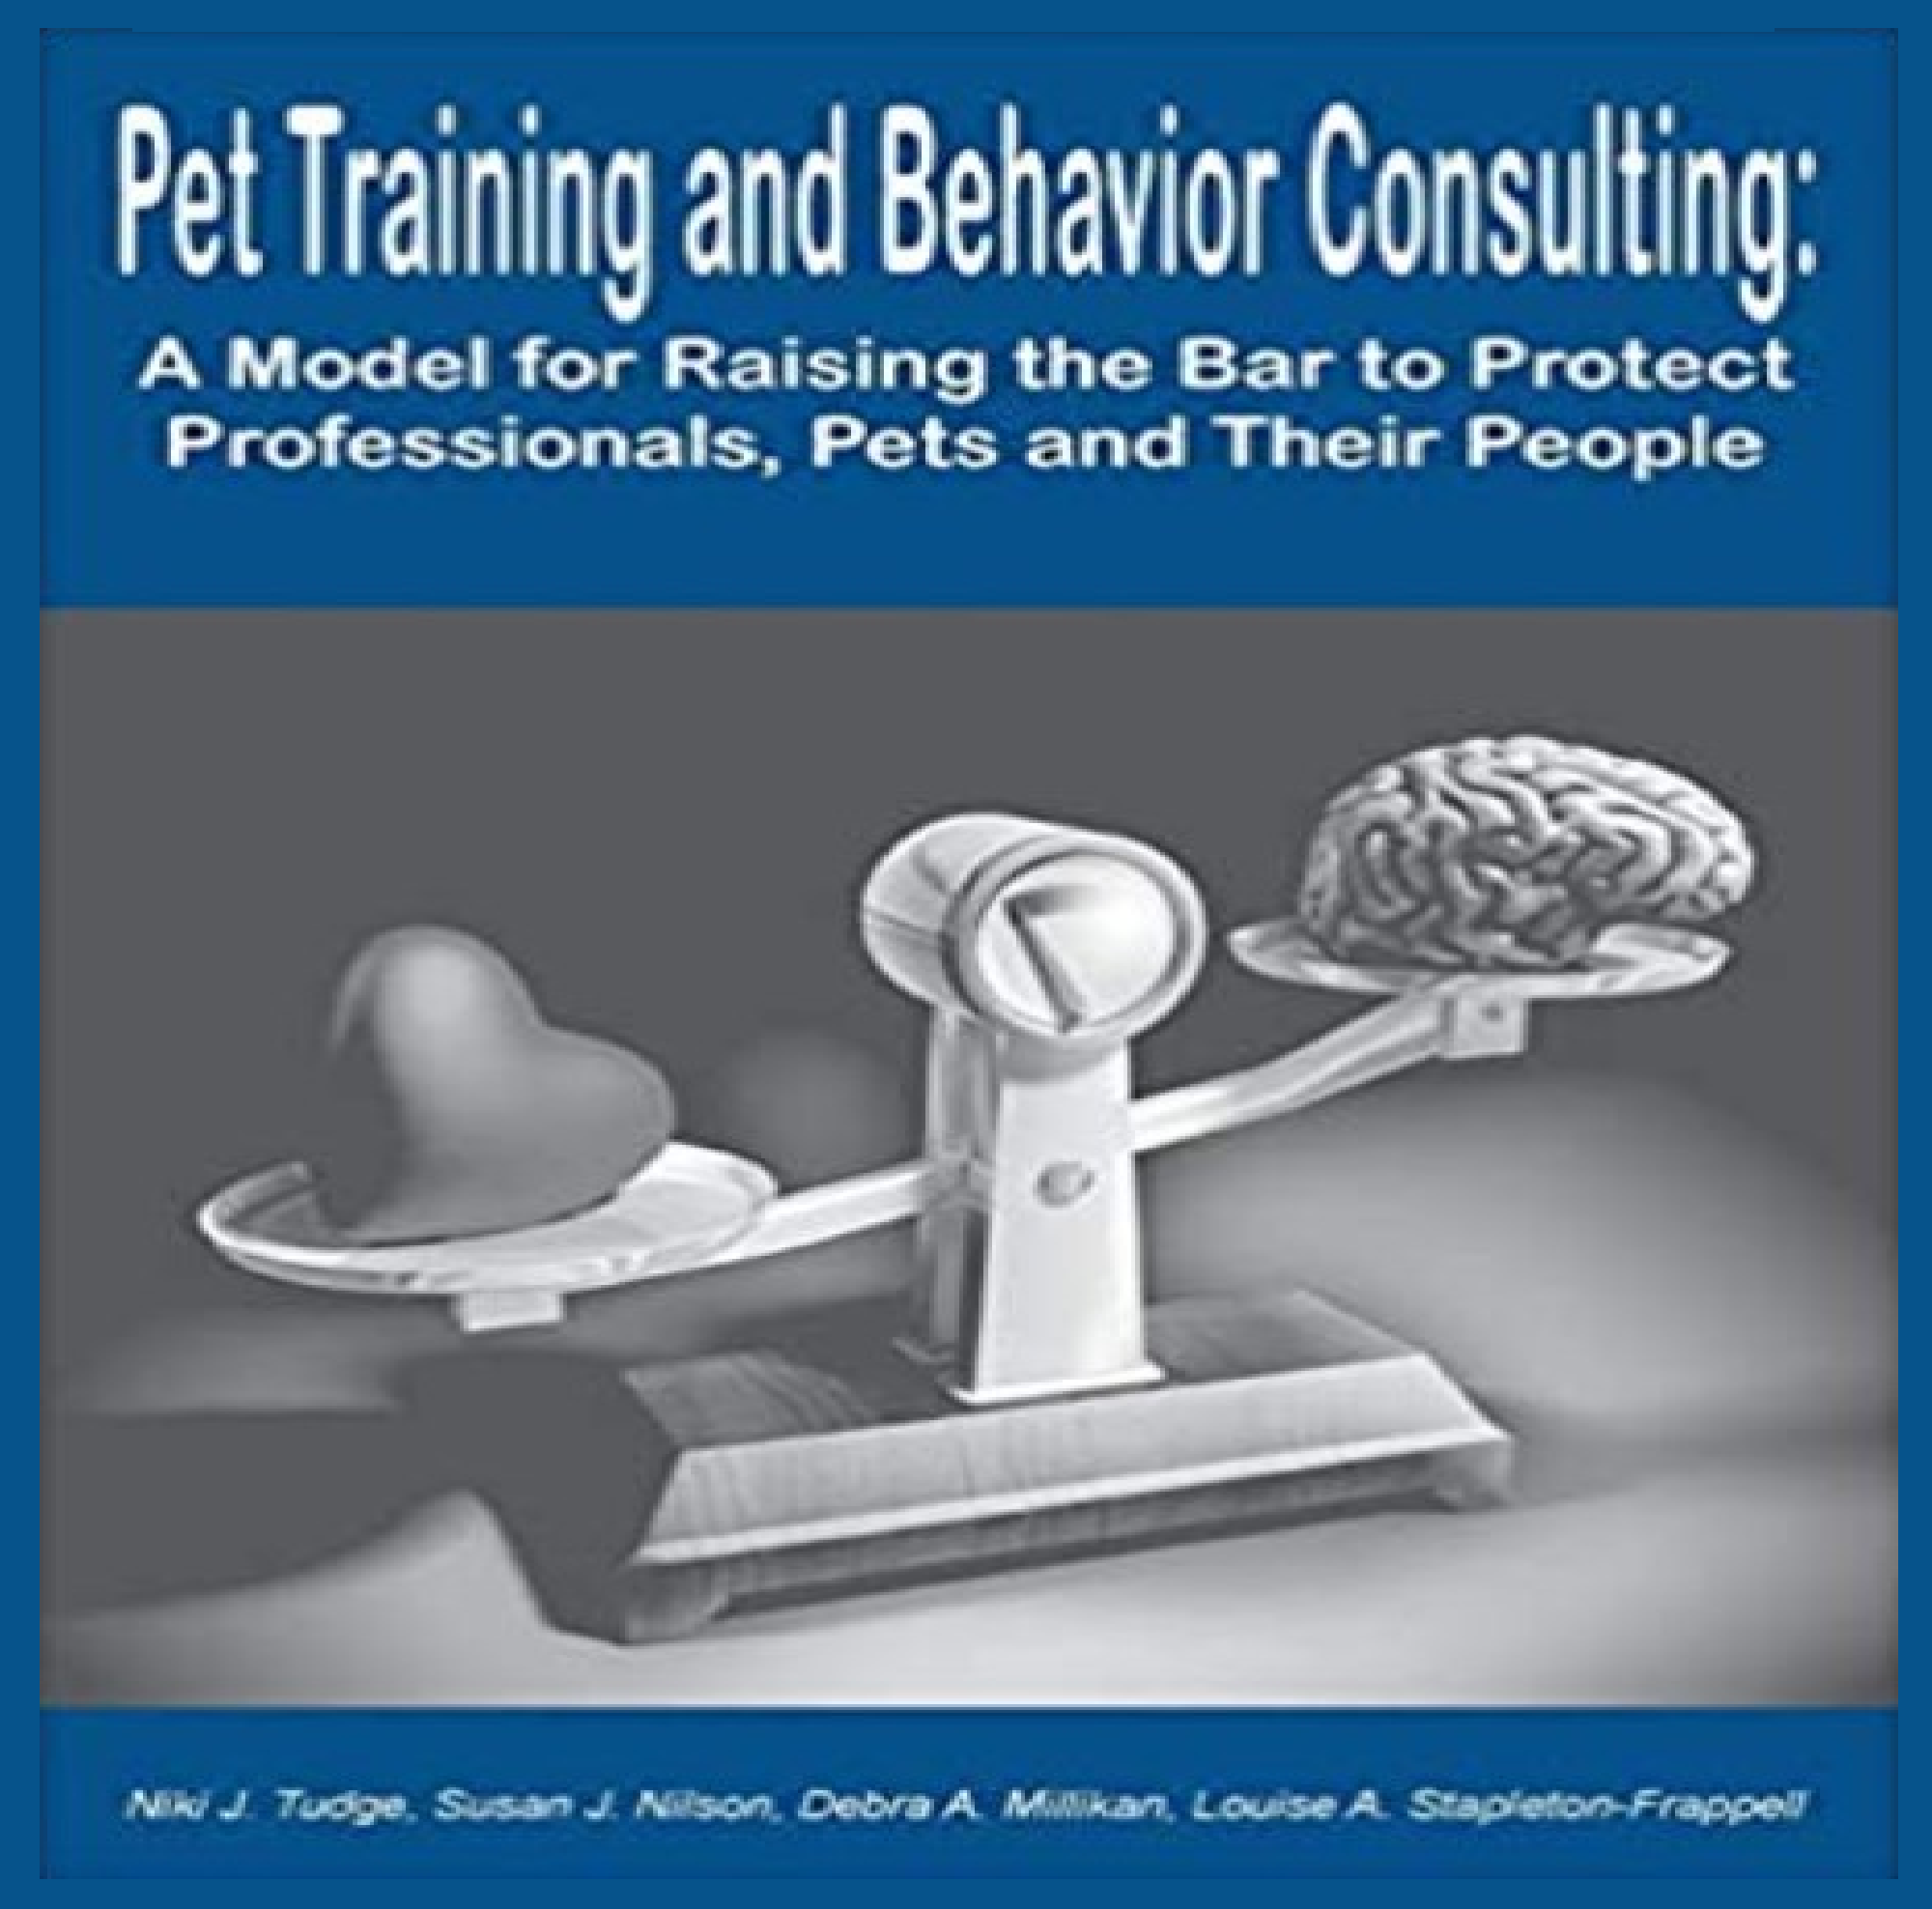 Pet Training and Behavior Consulting